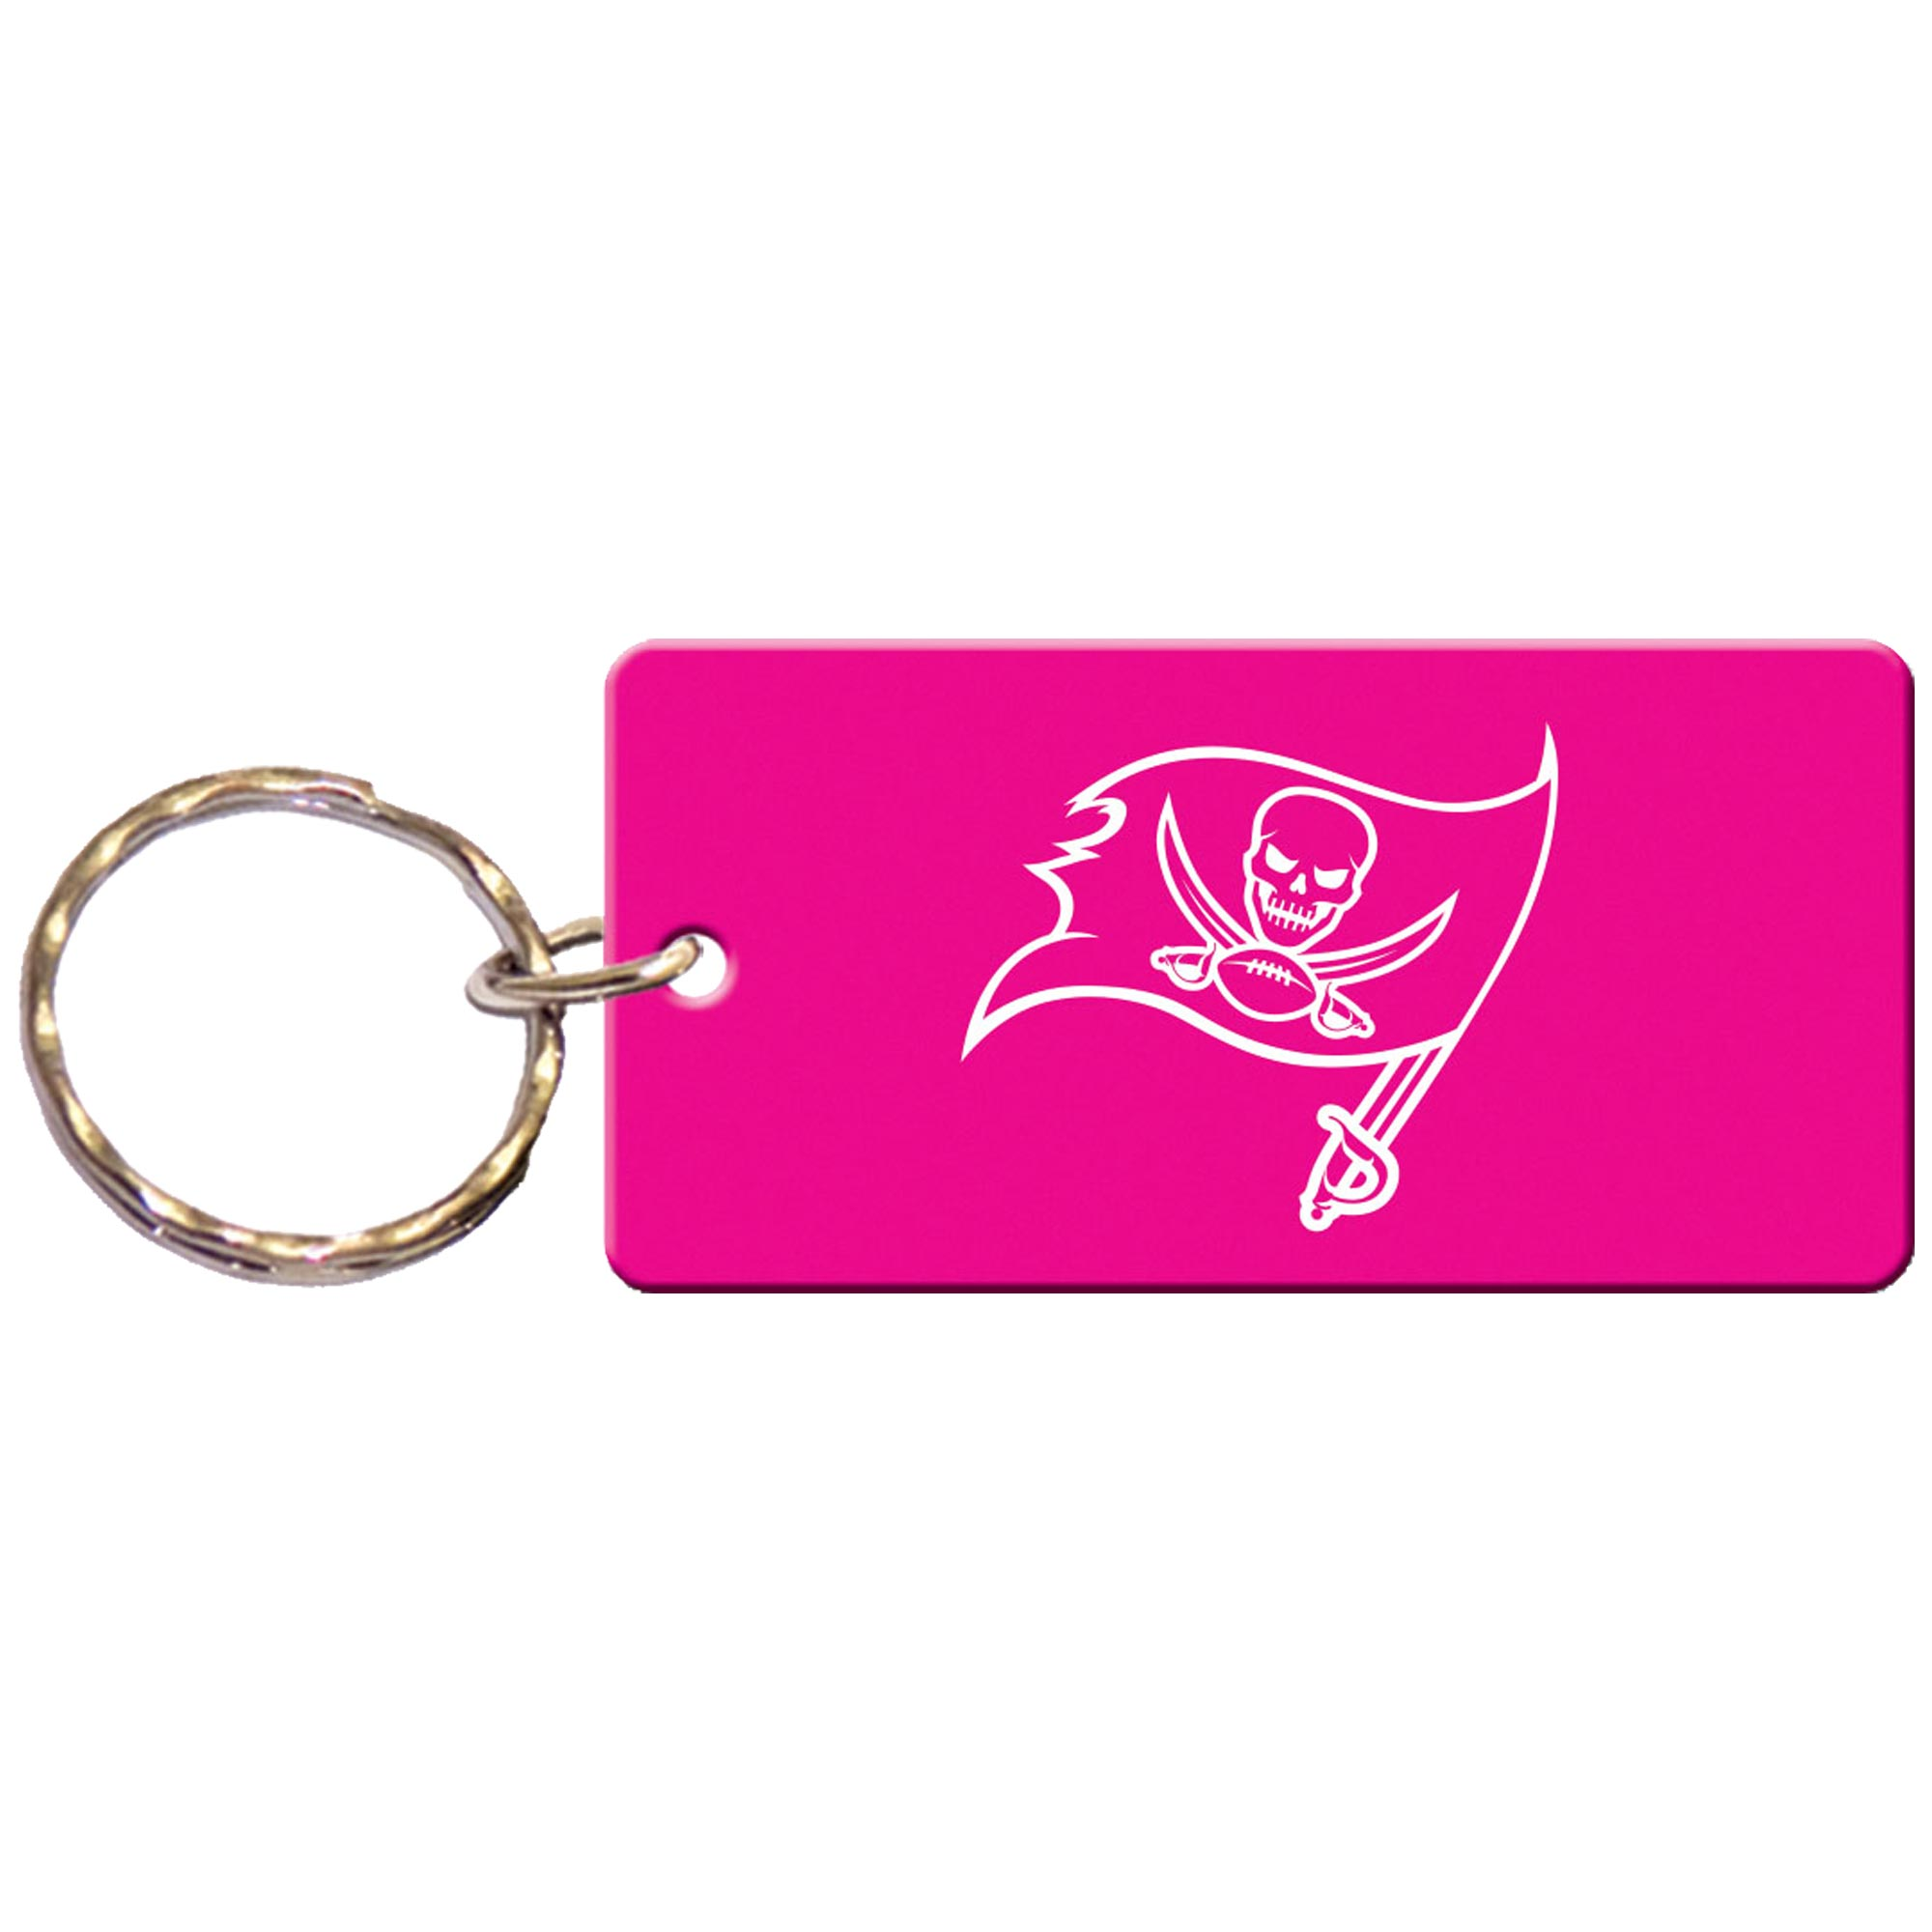 Tampa Bay Buccaneers Women's Pink and White Keychain - No Size